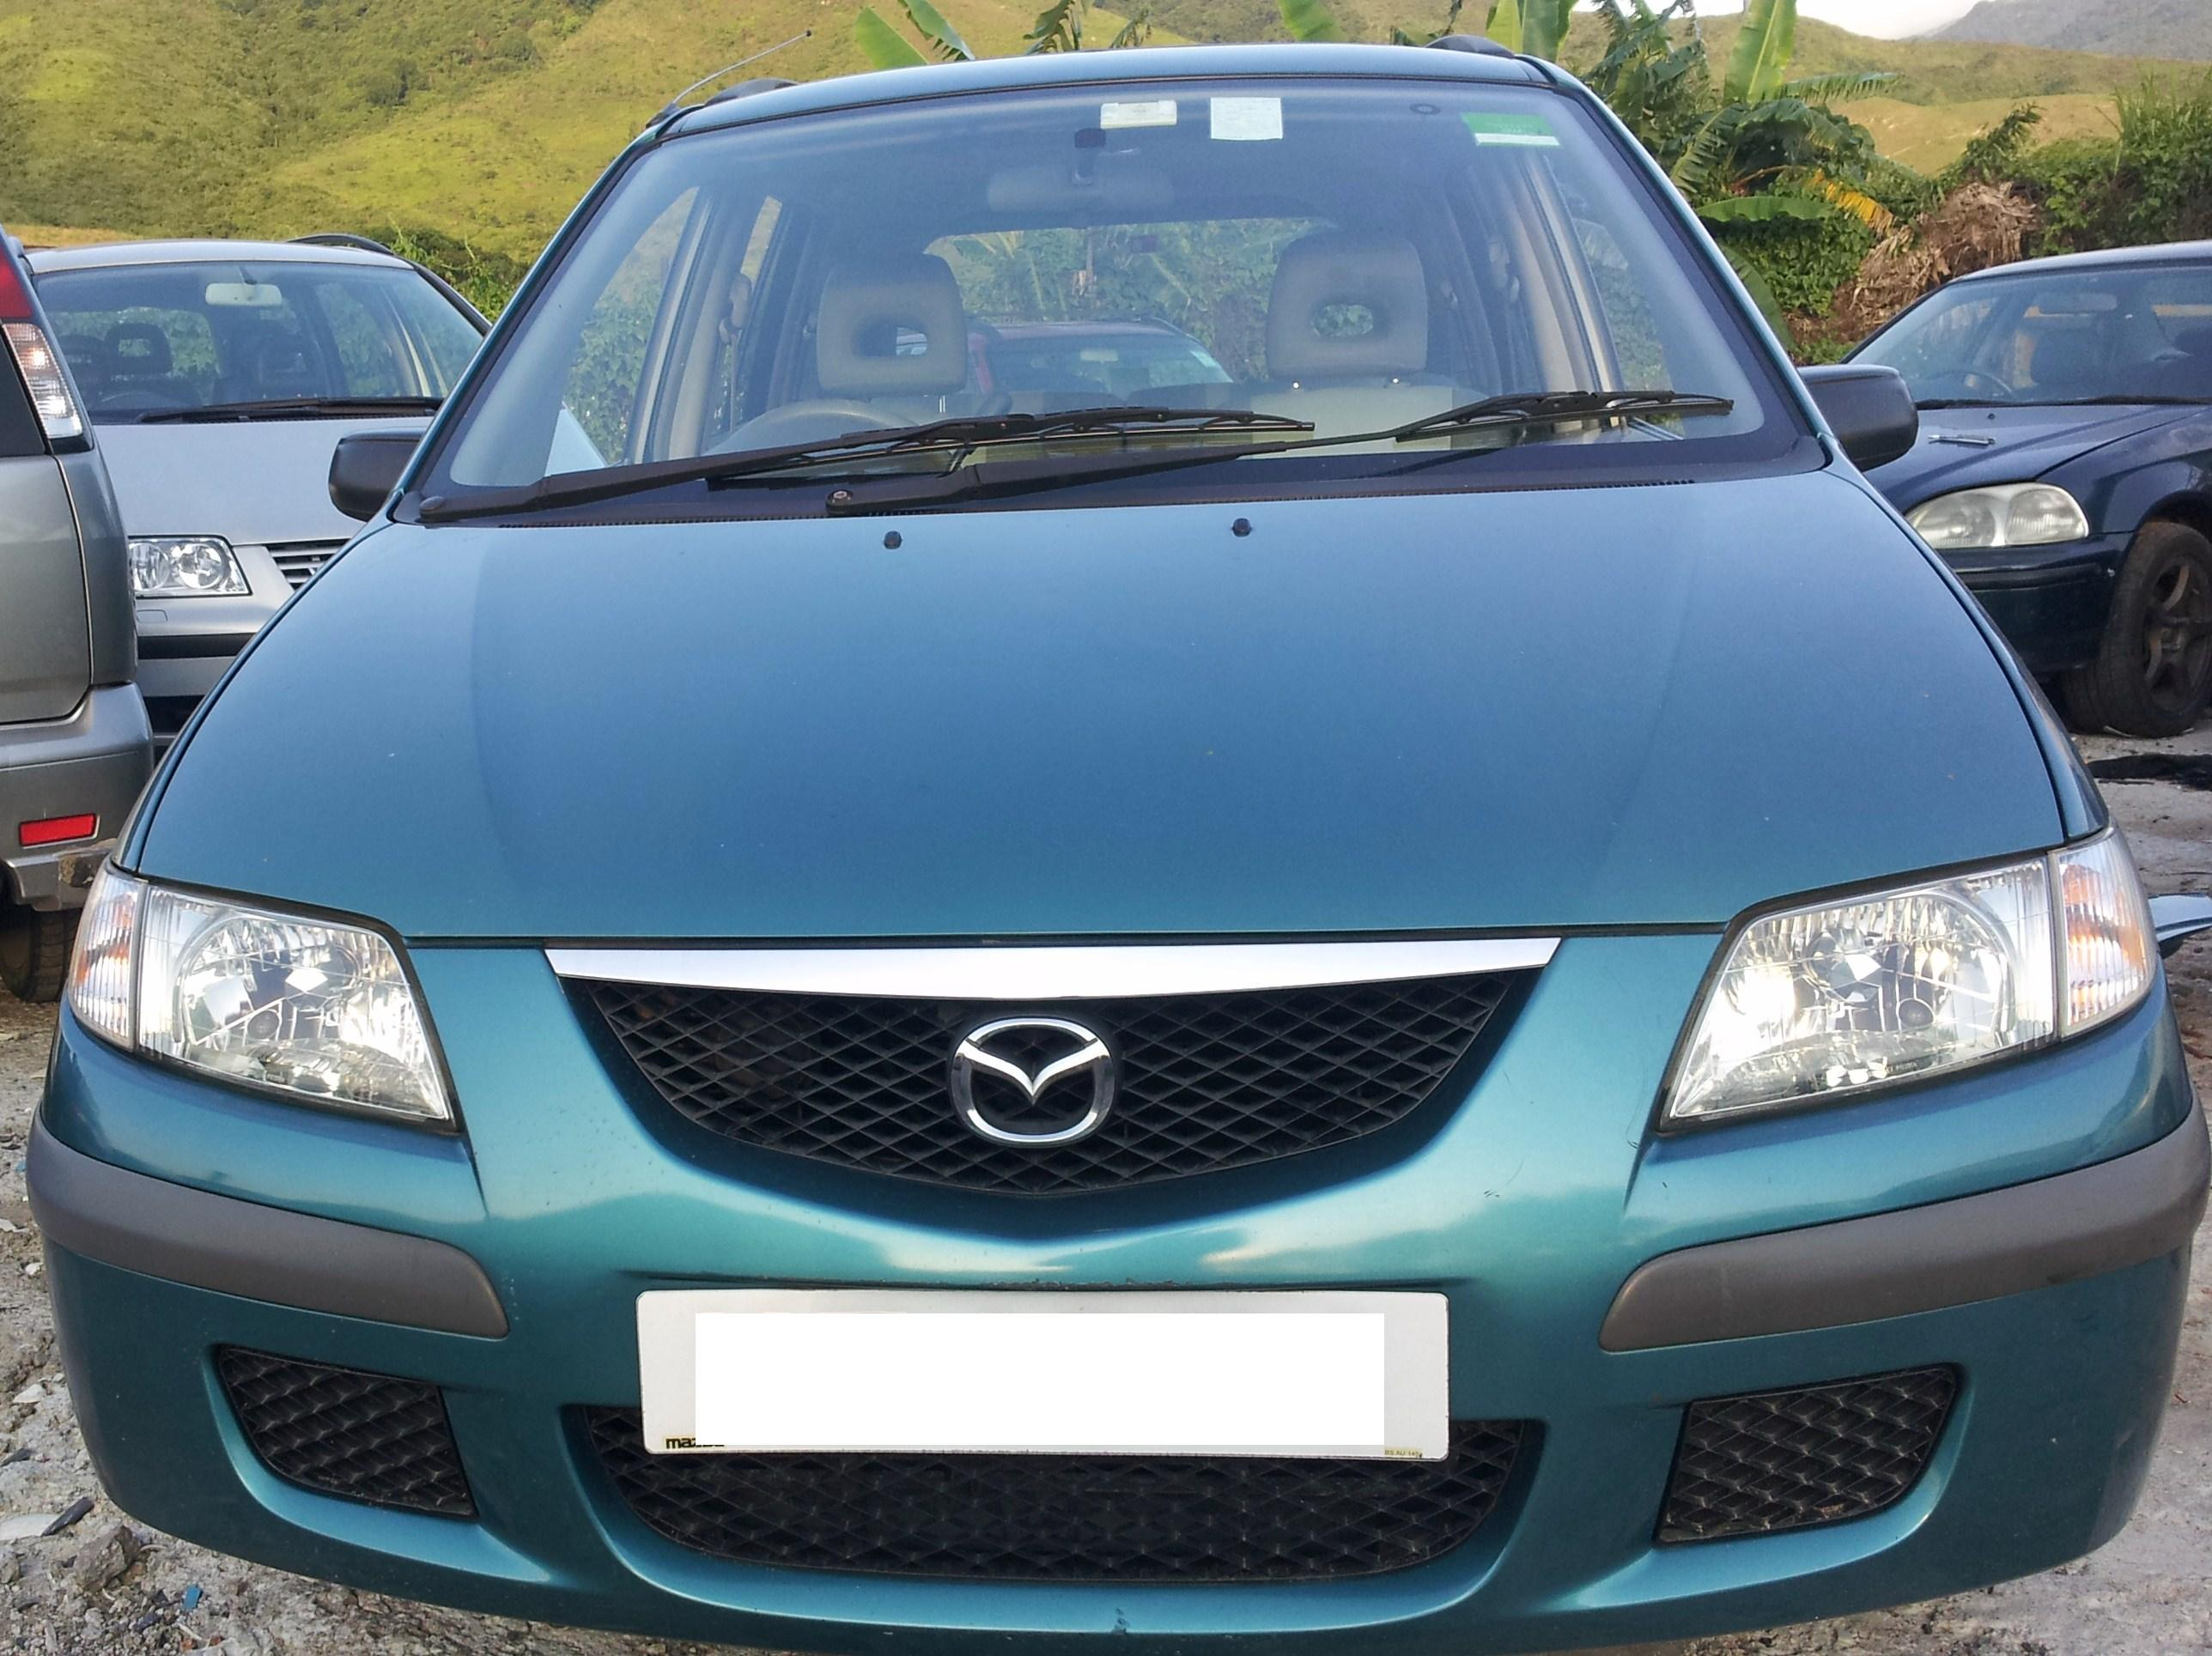 WANTED: Mazda Premacy 7 seats family car